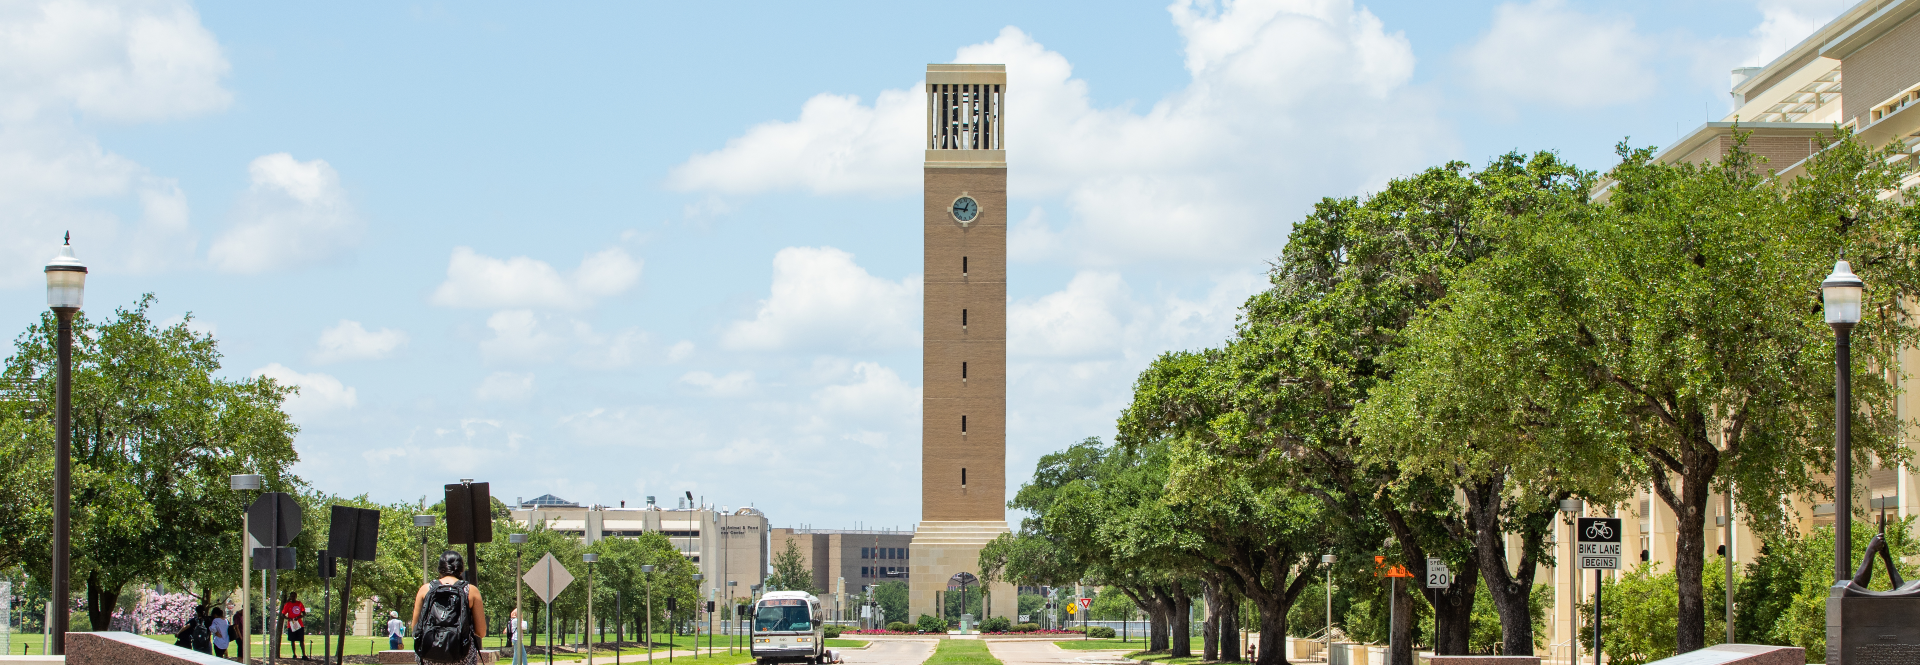 From Margaret Rudder to Frank Bolton, the namesakes of these five campus buildings left a unique legacy at Texas A&M University.